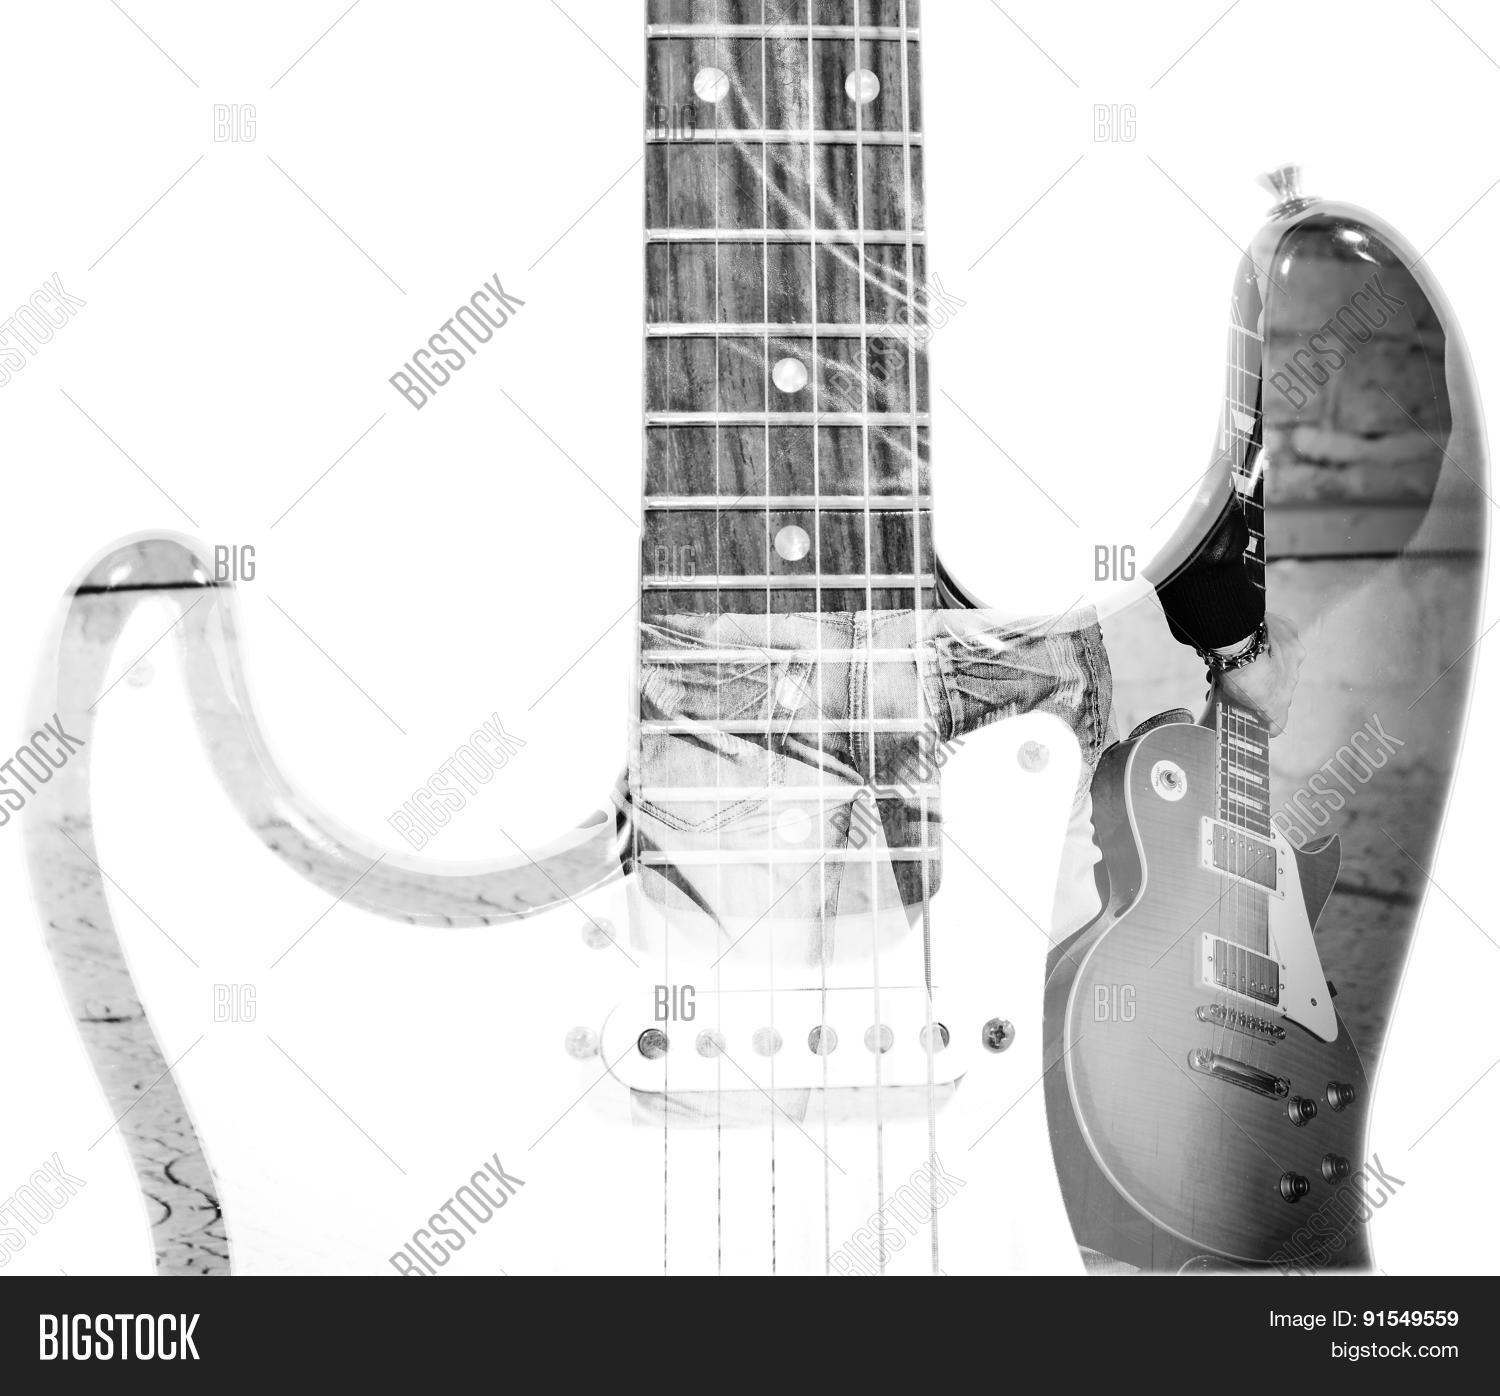 acoustic,acoustic guitar,alms,alone,art,audio,back,black,bw,classic,cool,country,double,electric,electric guitar,exposure,guitar,guitar player,hobby,instrument,lefty,lifestyle,listen,man,man silhouette,melody,money,music,musical,musician,outdoors,play,player,practice,rear,retro,rock,rock-n-roll,rocker,rock n roll,silhouette,silhouette man,sing,singer,song,sound,stairs,staring,steps,street,strings,student,toned,tune,urban,view,vintage,wall,white